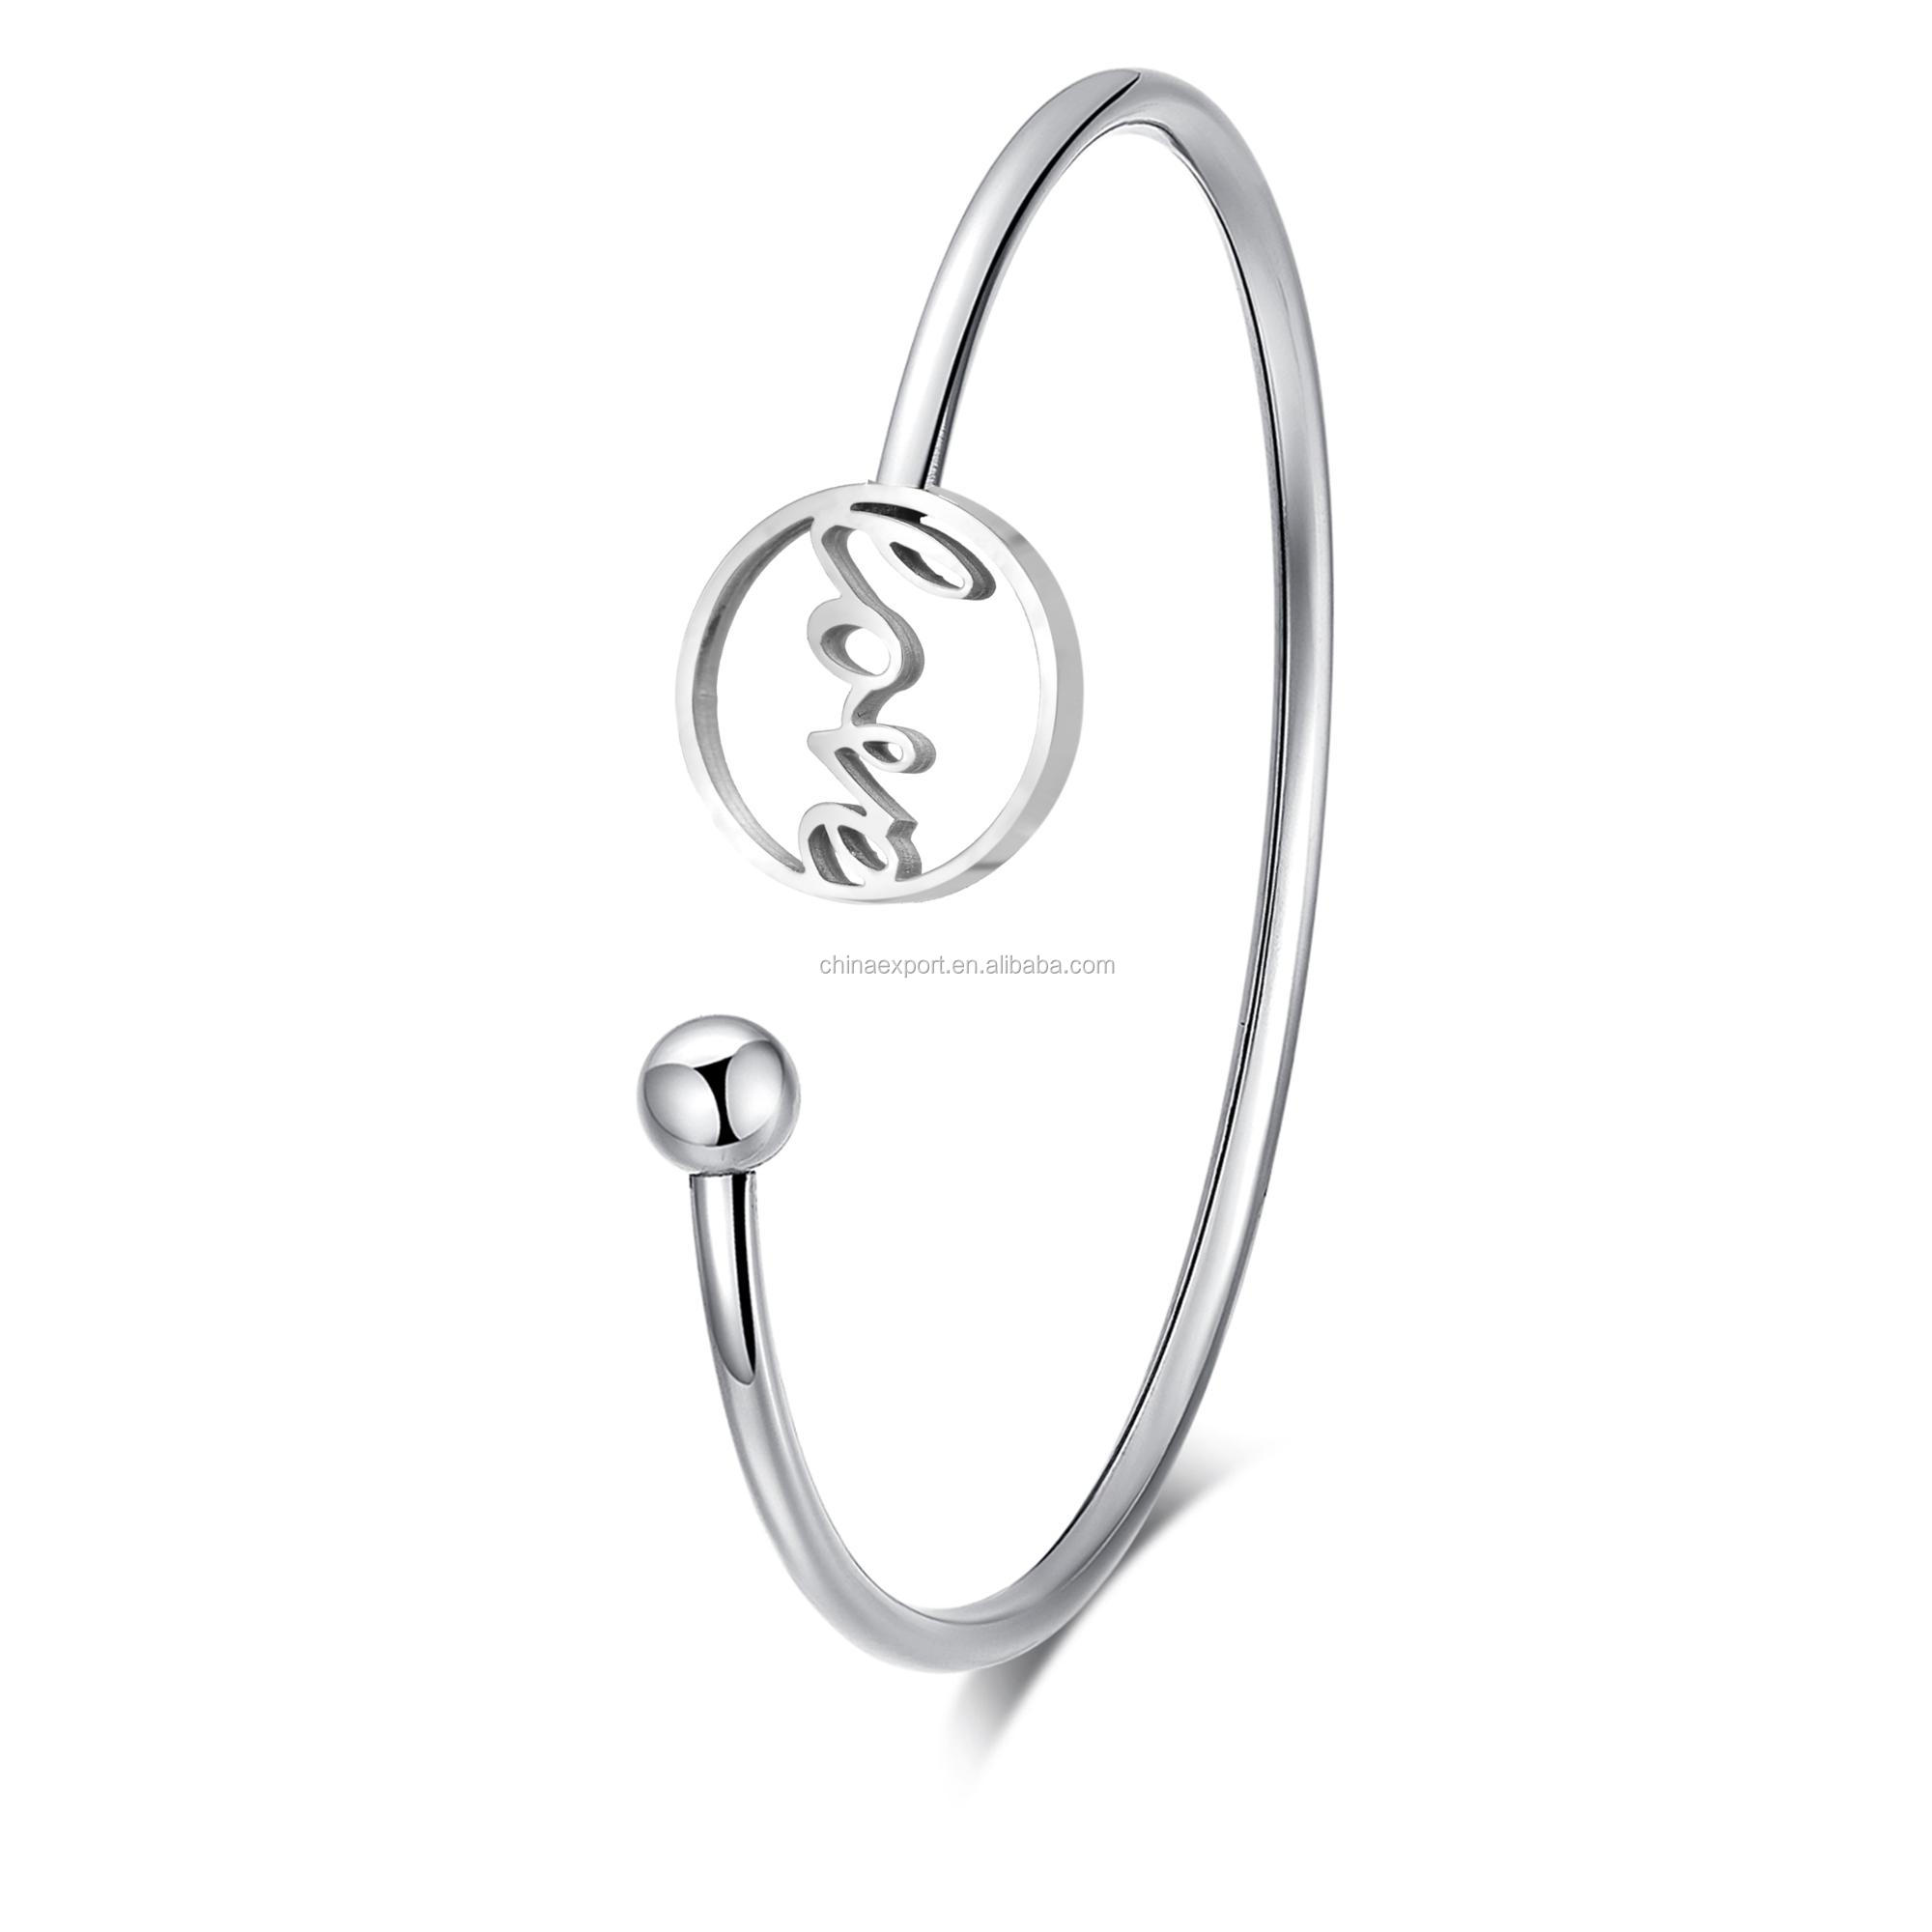 Stainless steel eternal love and ball rebound wire cuff bracelets for lady